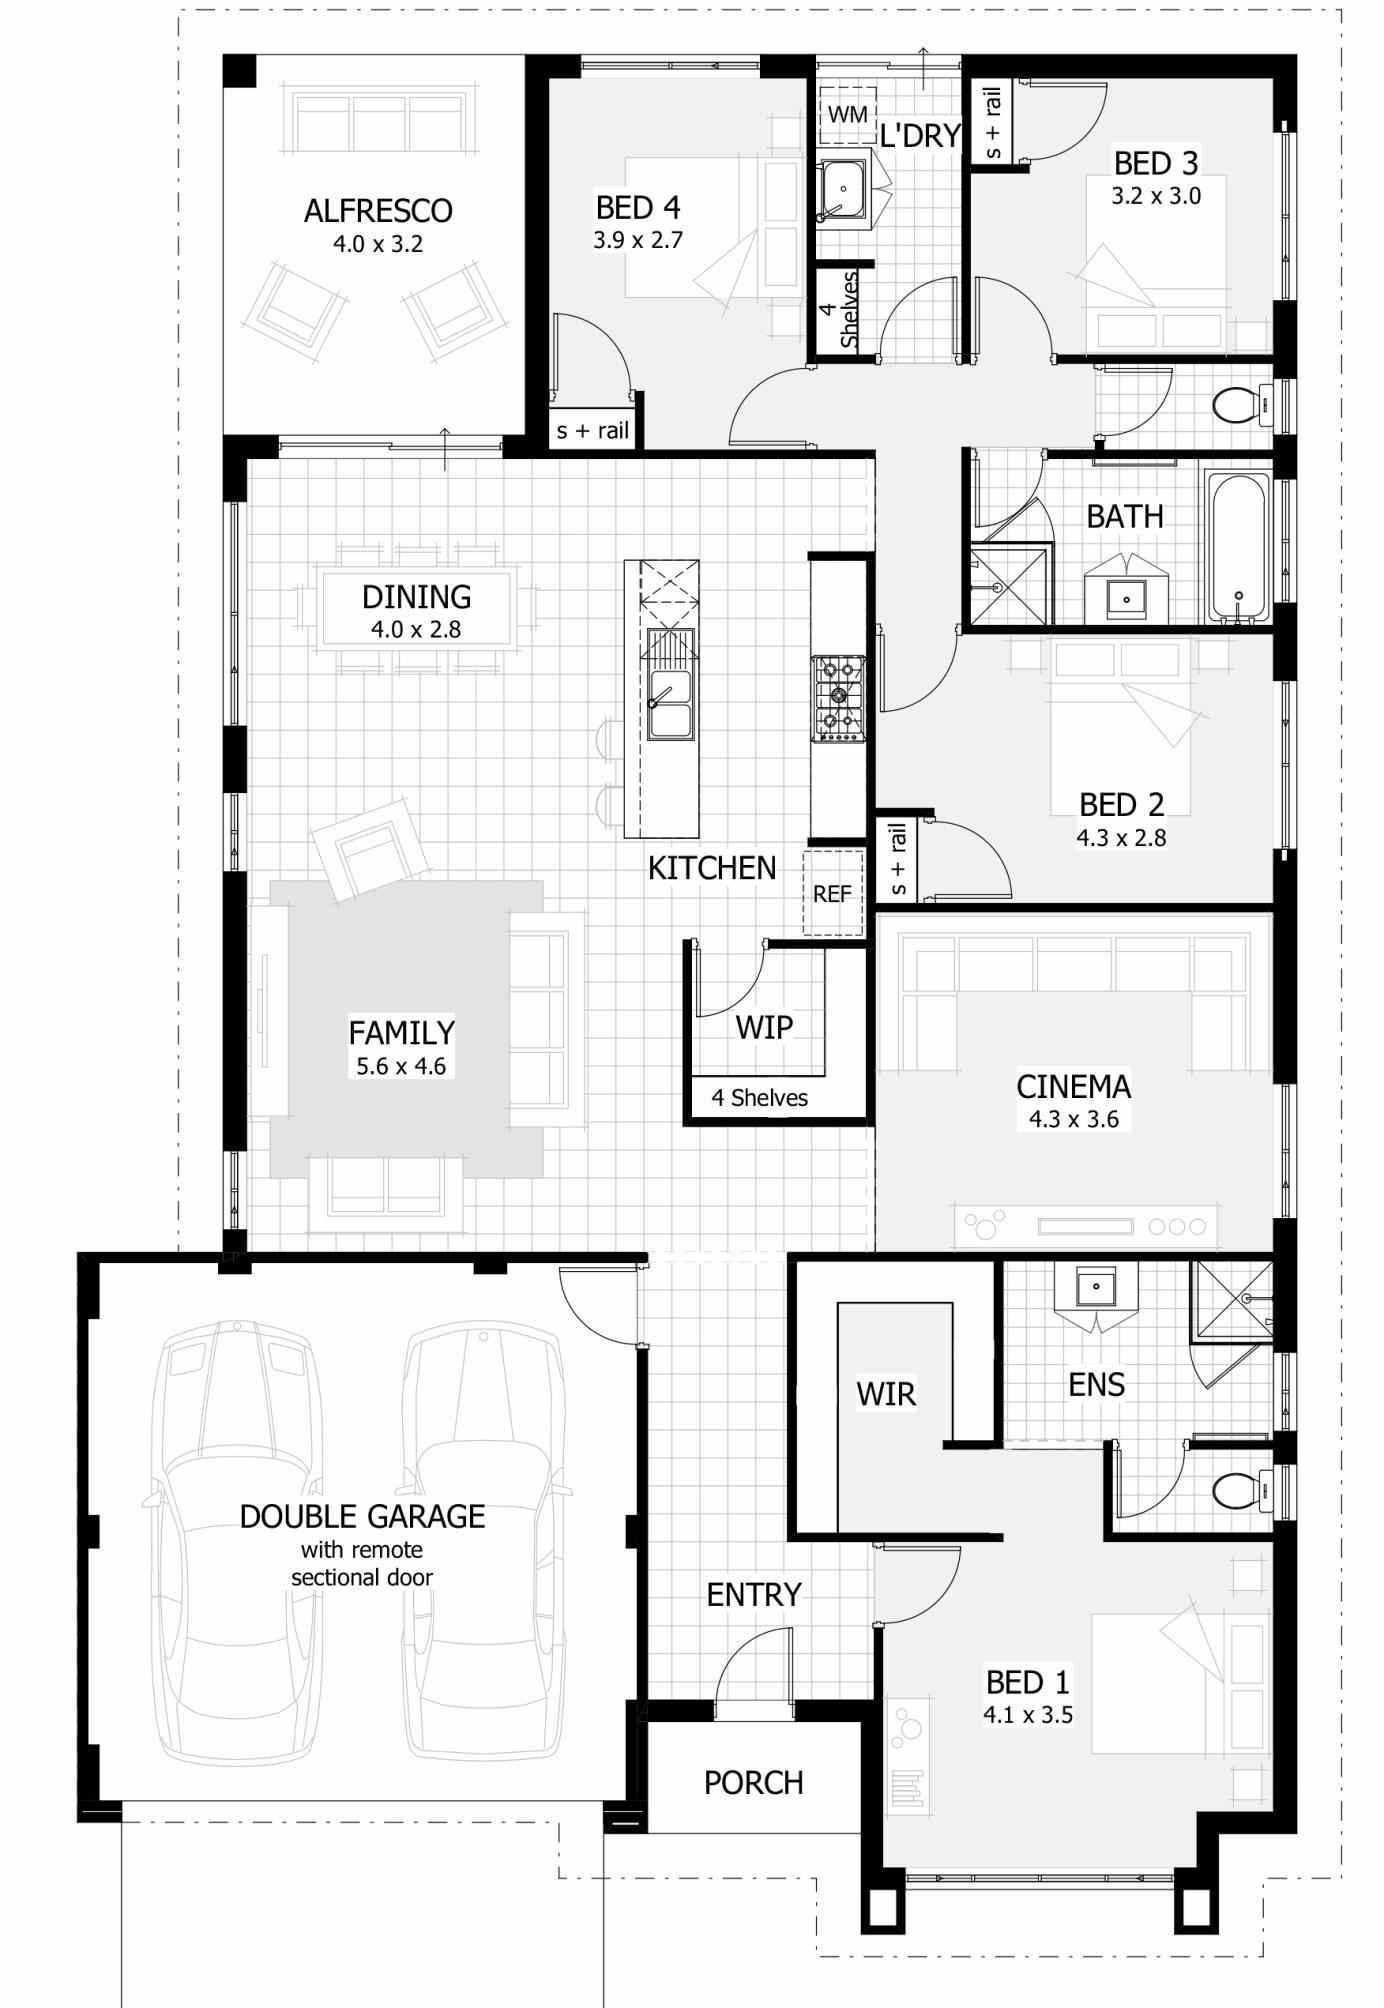 Inspirational Four Bedroom House Plans Farmhouse Layout Lovely Single Story 4 Bed In 2020 House Plans Australia Four Bedroom House Plans Single Story House Floor Plans